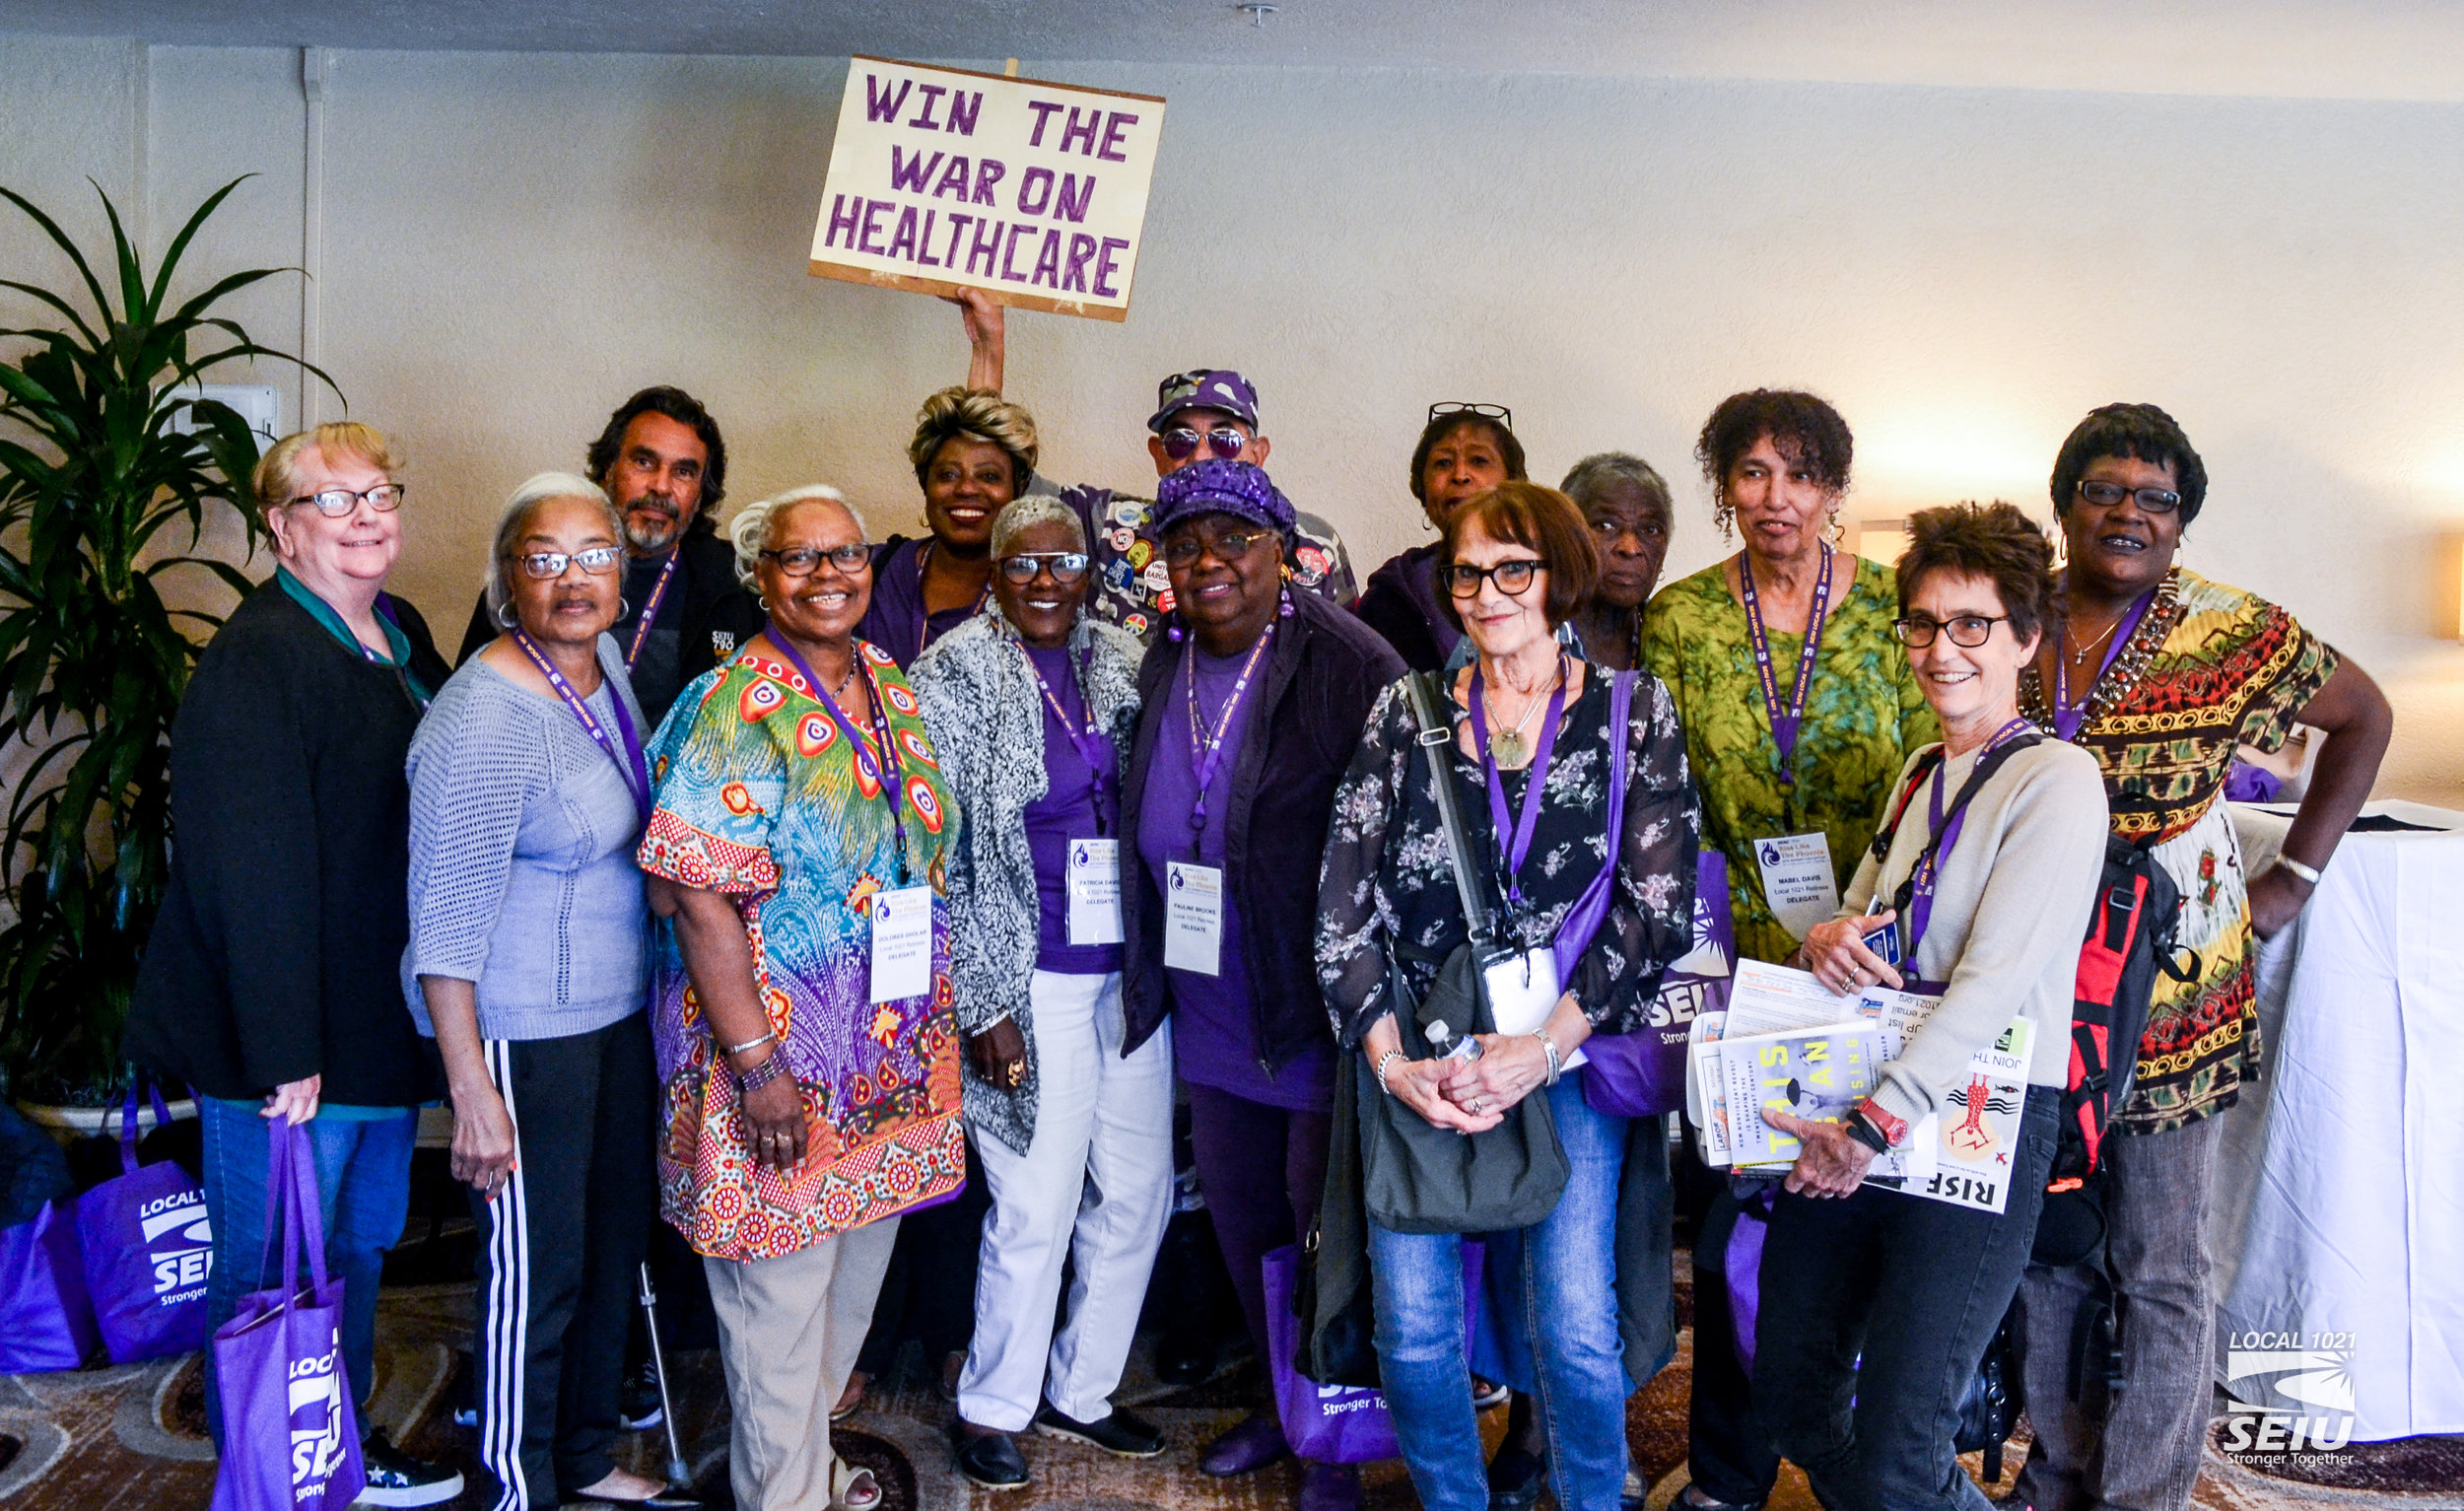 SEIU 1021 Convention Group Portraits-23.jpg